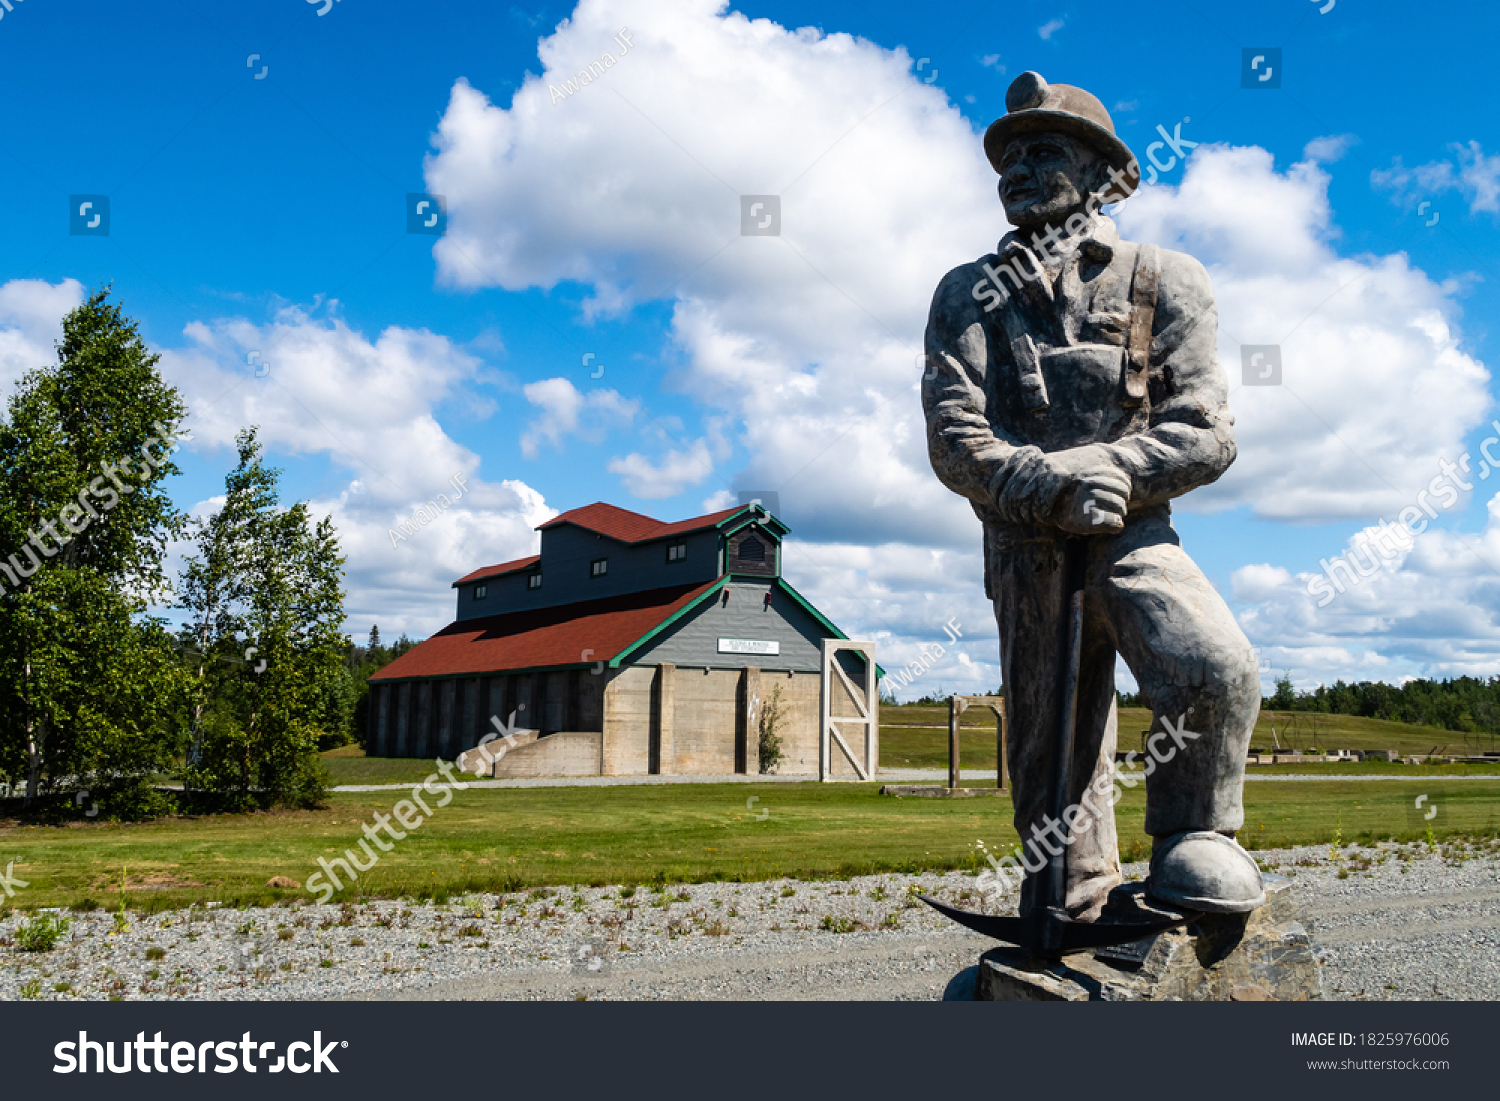 stock-photo-val-d-or-canada-july-statue-